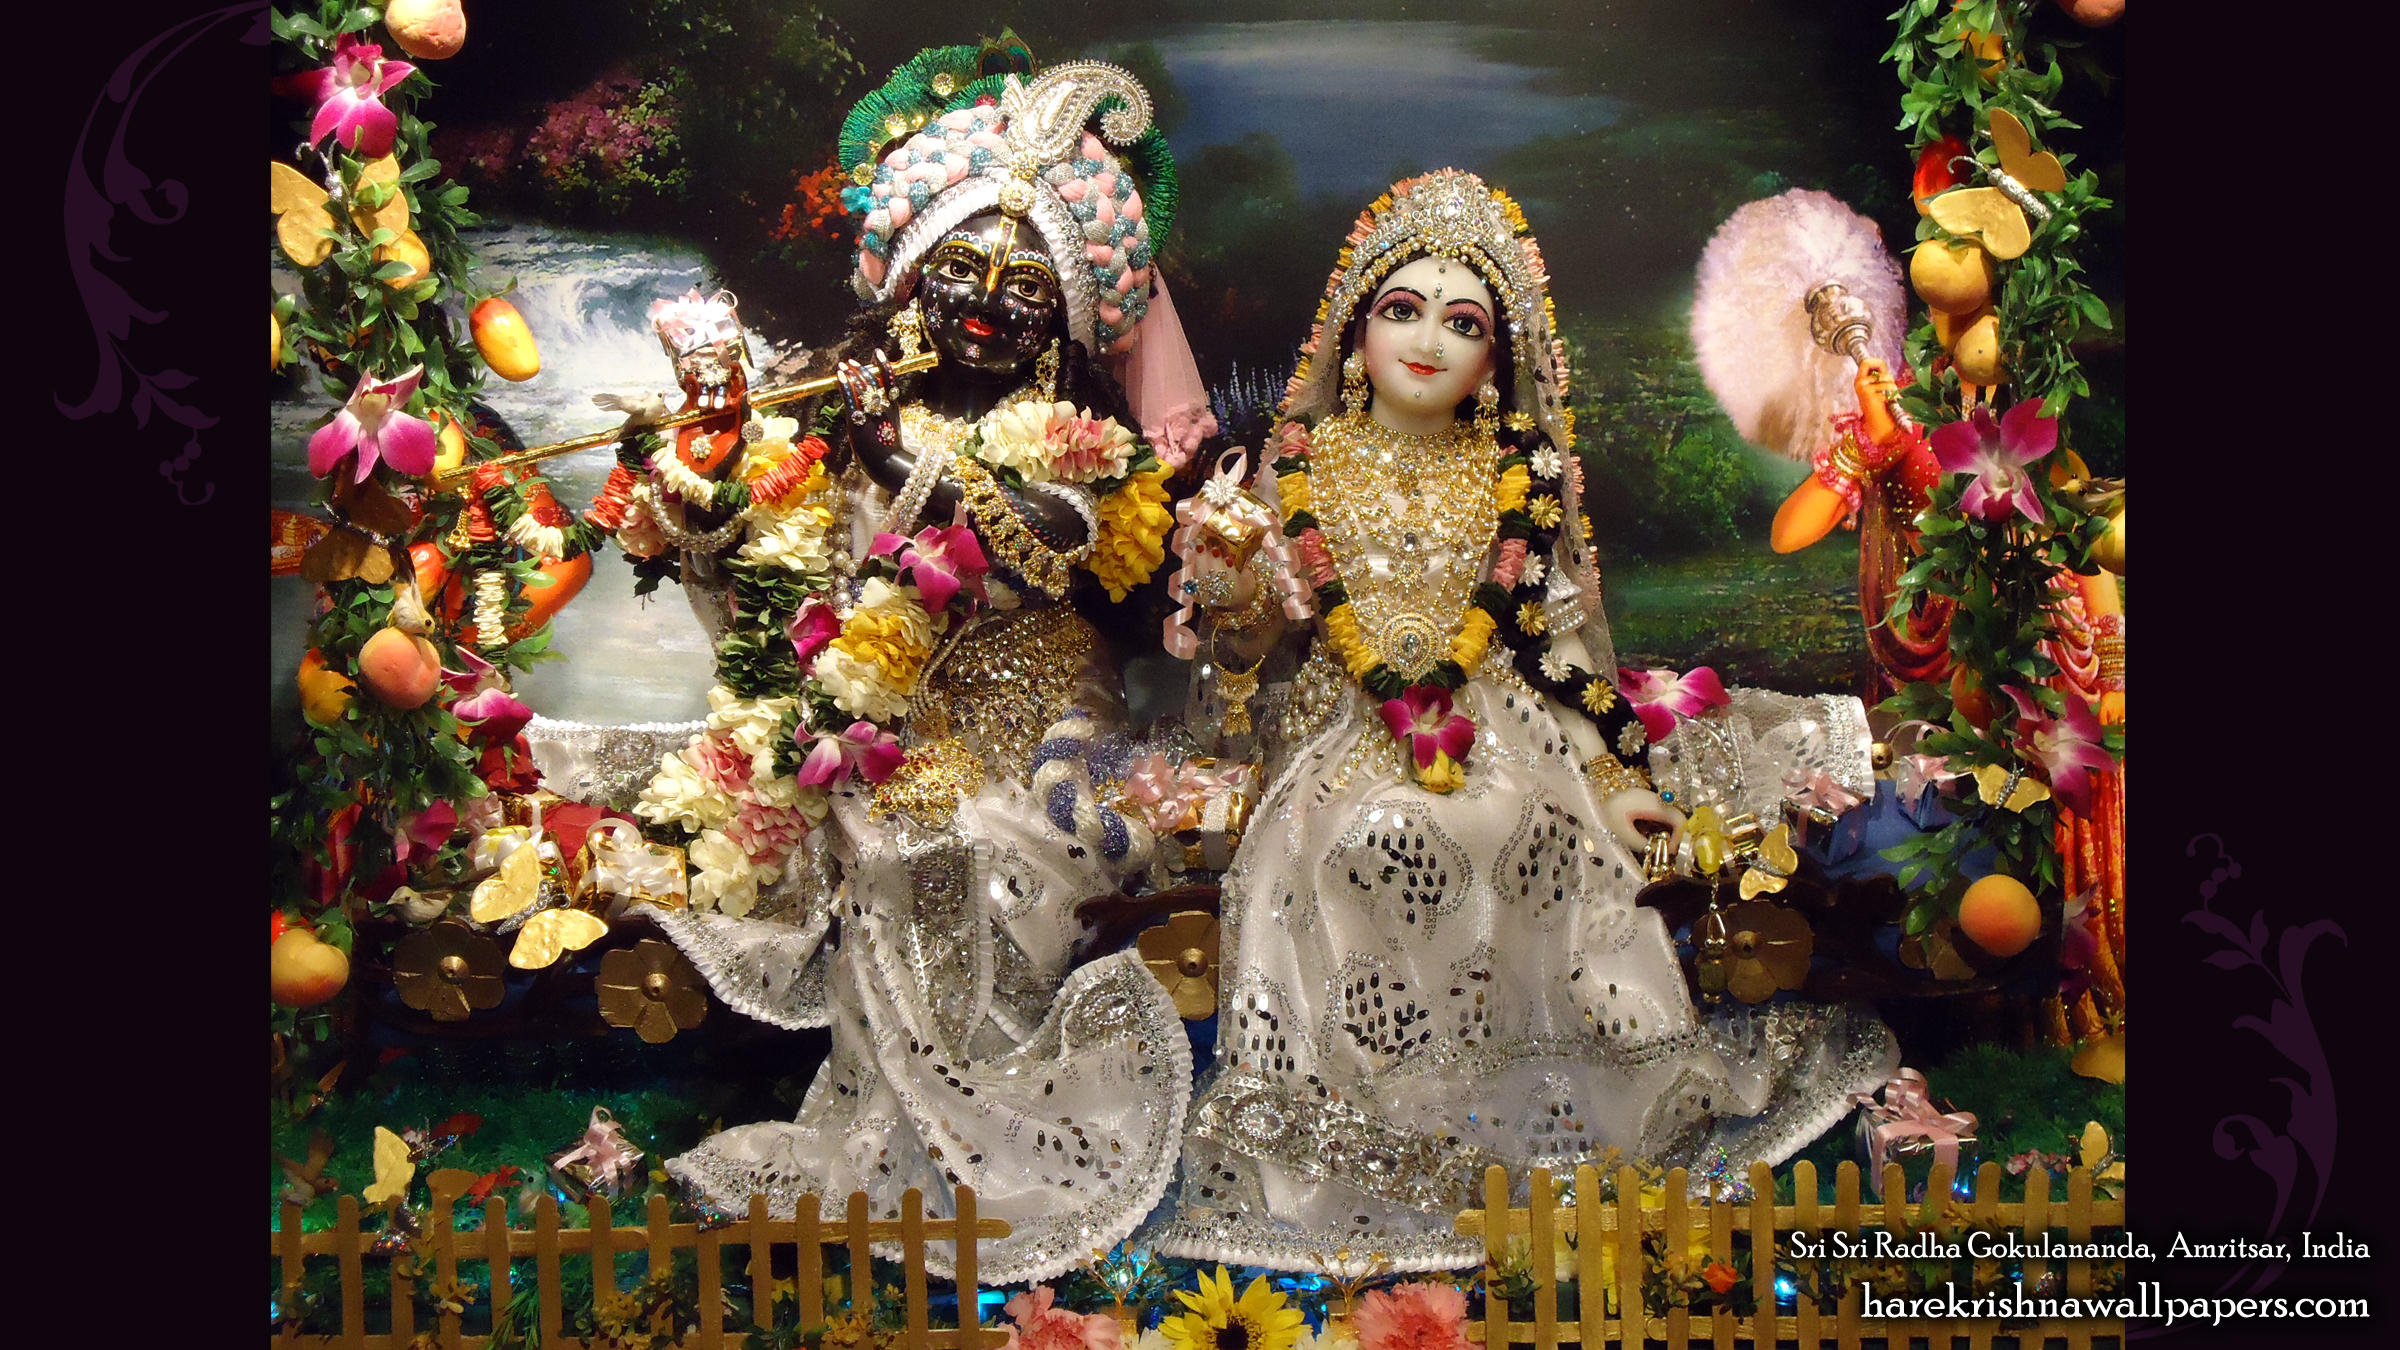 Sri Sri Radha Gokulananda Wallpaper (012) Size 2400x1350 Download